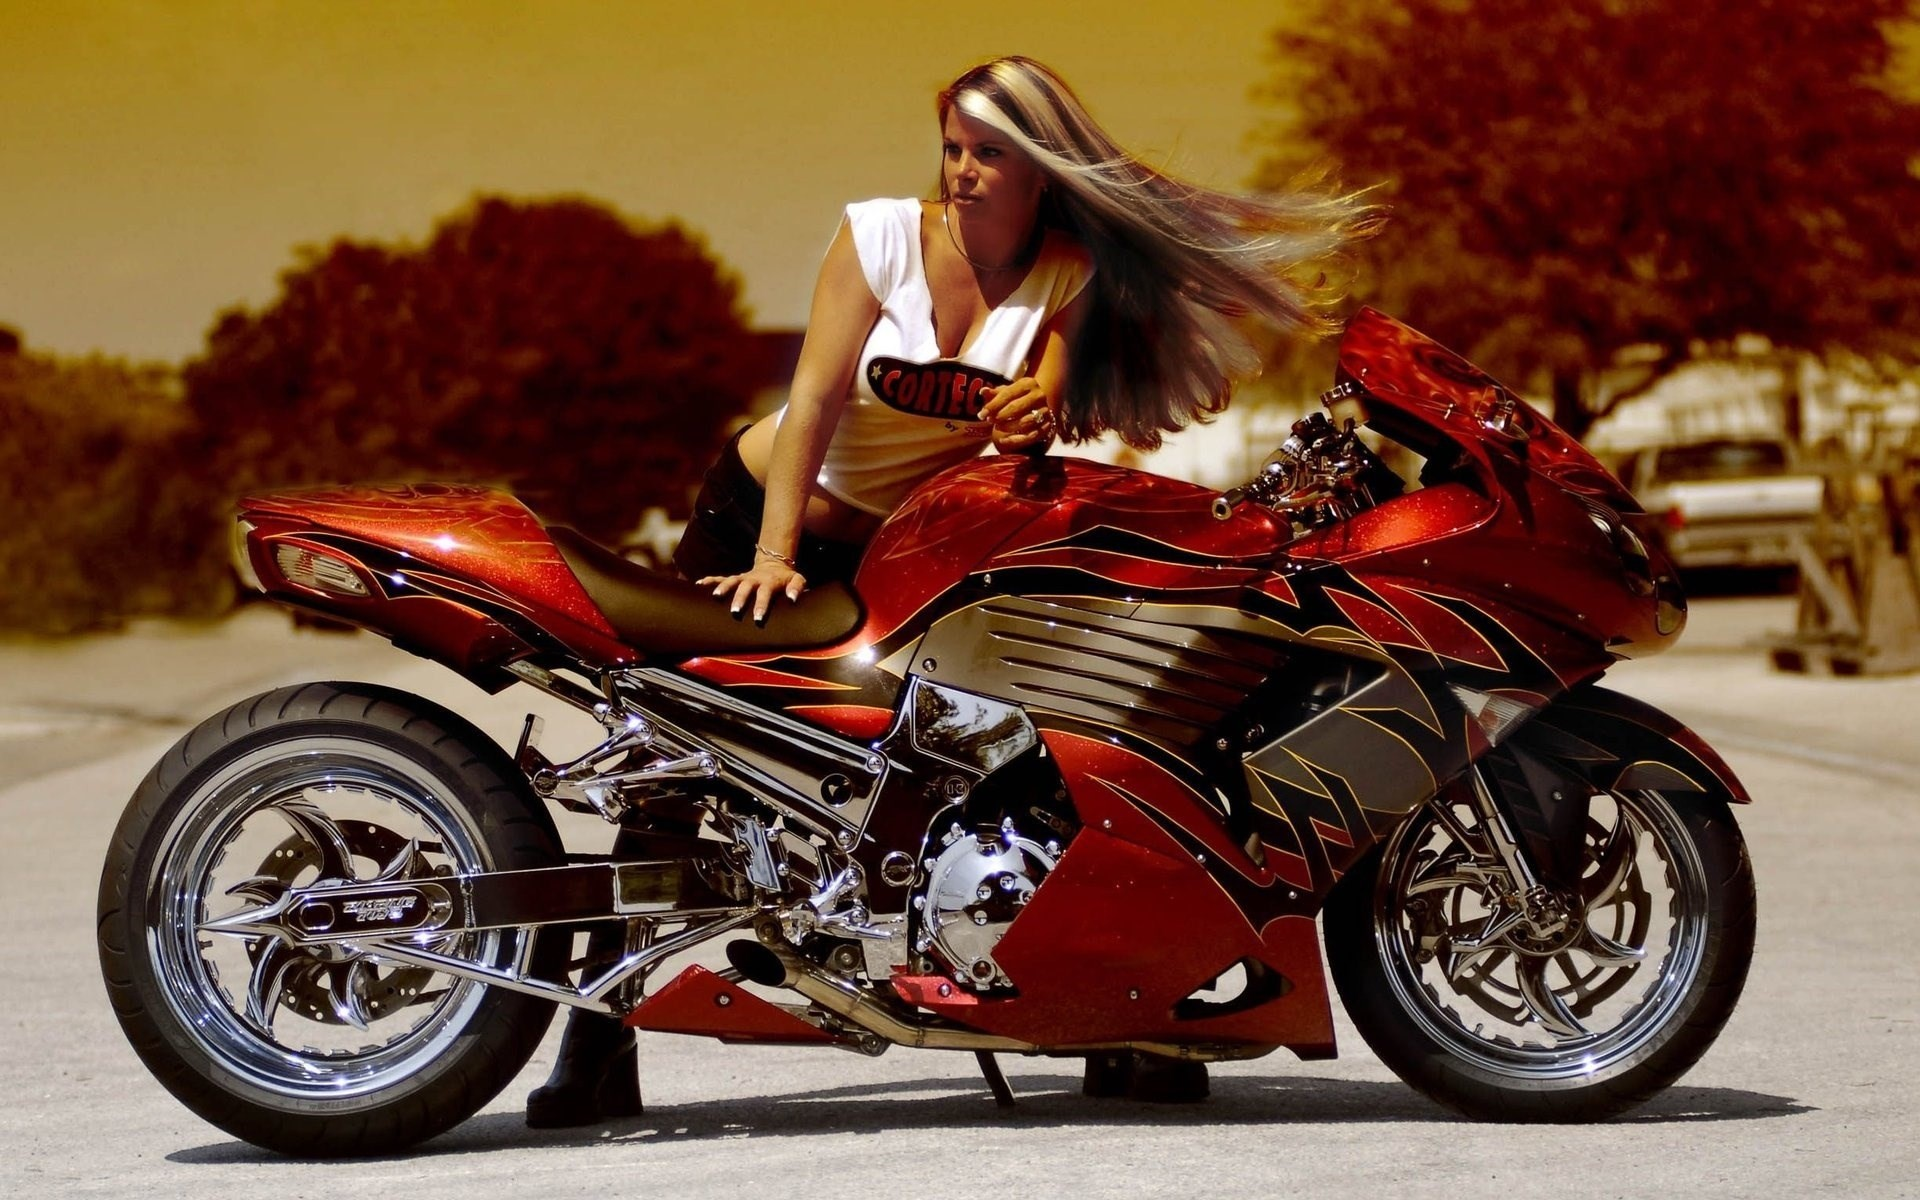 free screensaver wallpapers for girls and motorcycles, 439 kB – Jamar Round